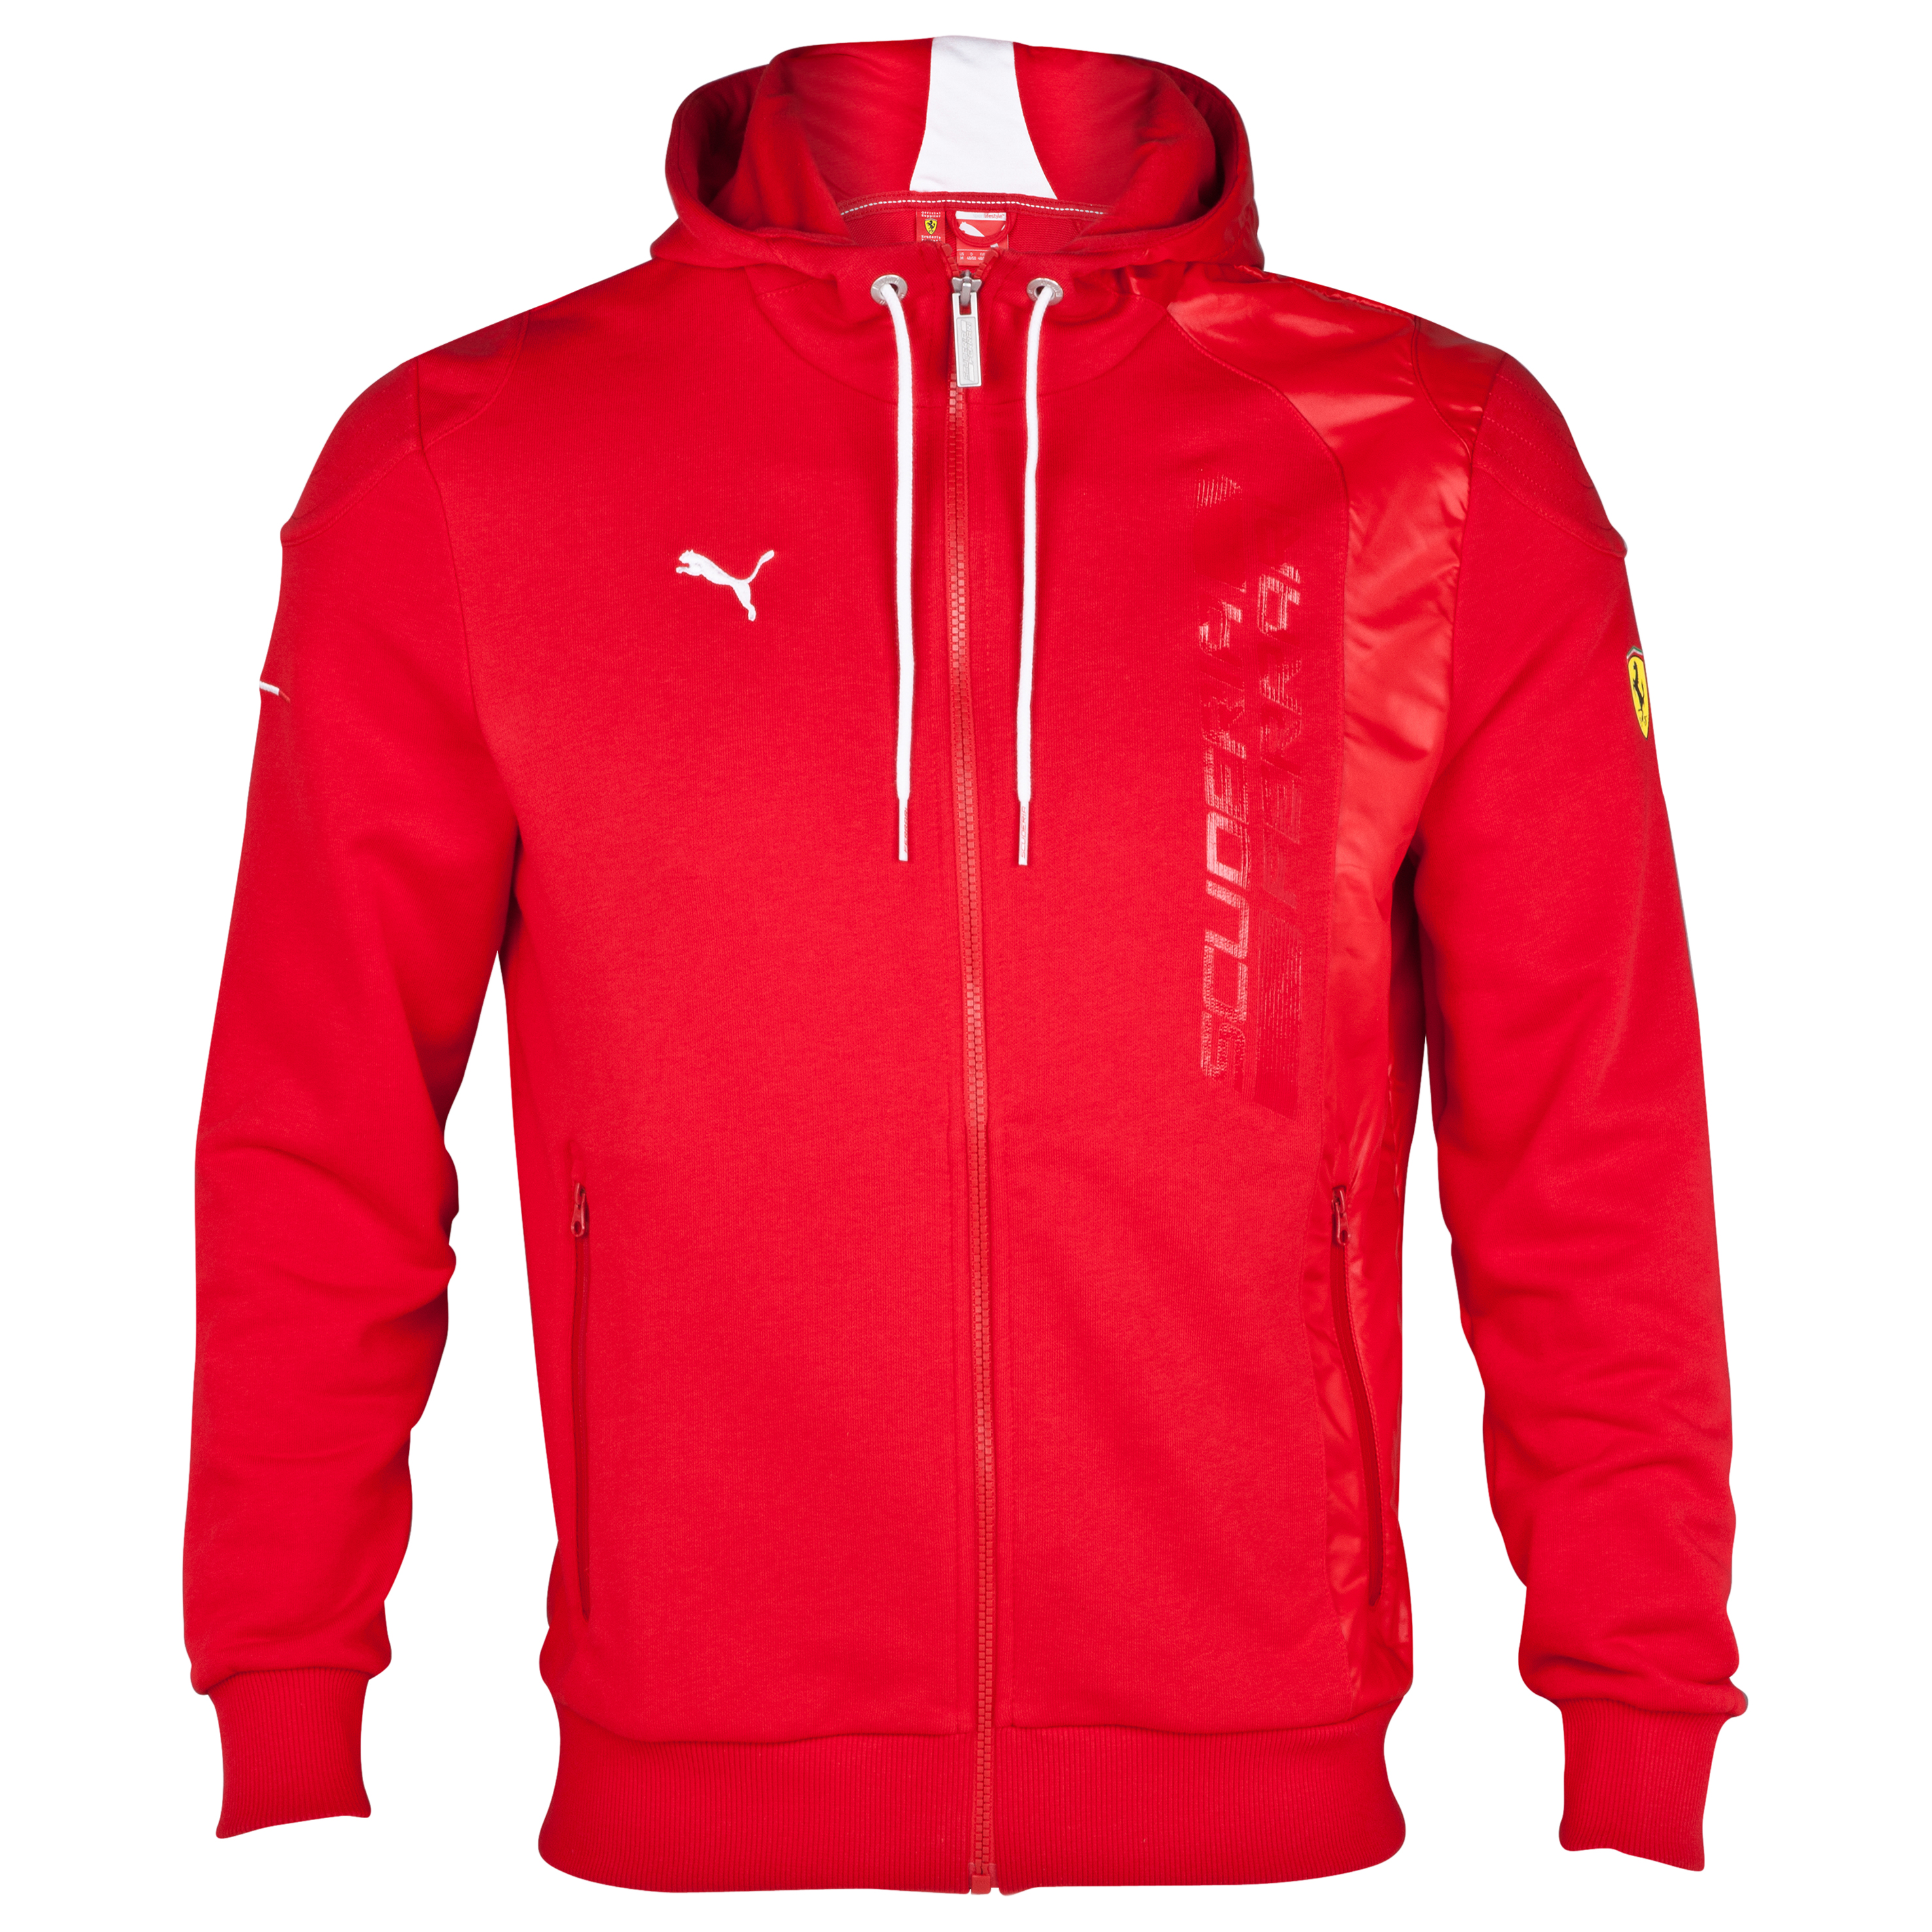 Scuderia Ferrari Hooded Sweat Jacket - Rosso Corsa